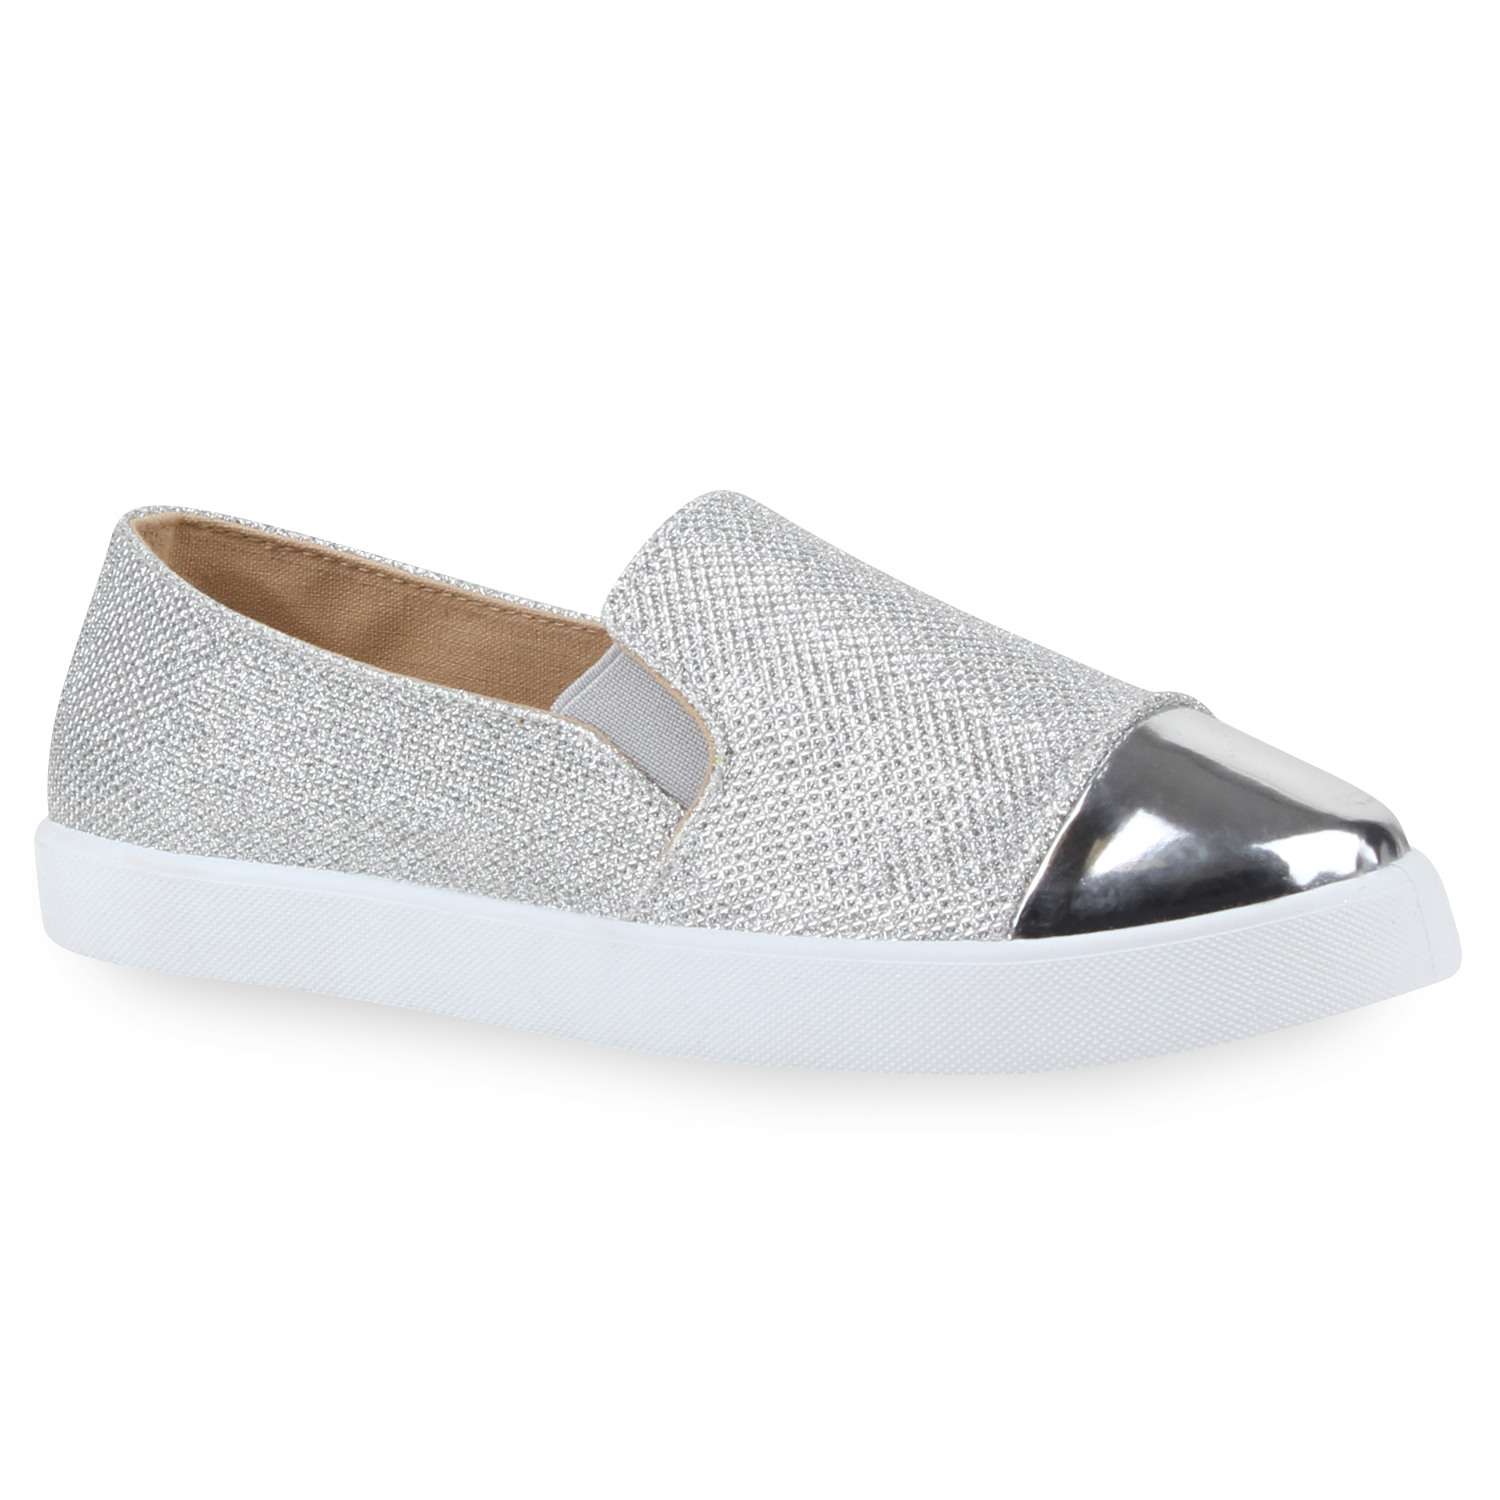 damen glitzer slip ons bequeme sneakers skater slipper metallic 79796 top ebay. Black Bedroom Furniture Sets. Home Design Ideas